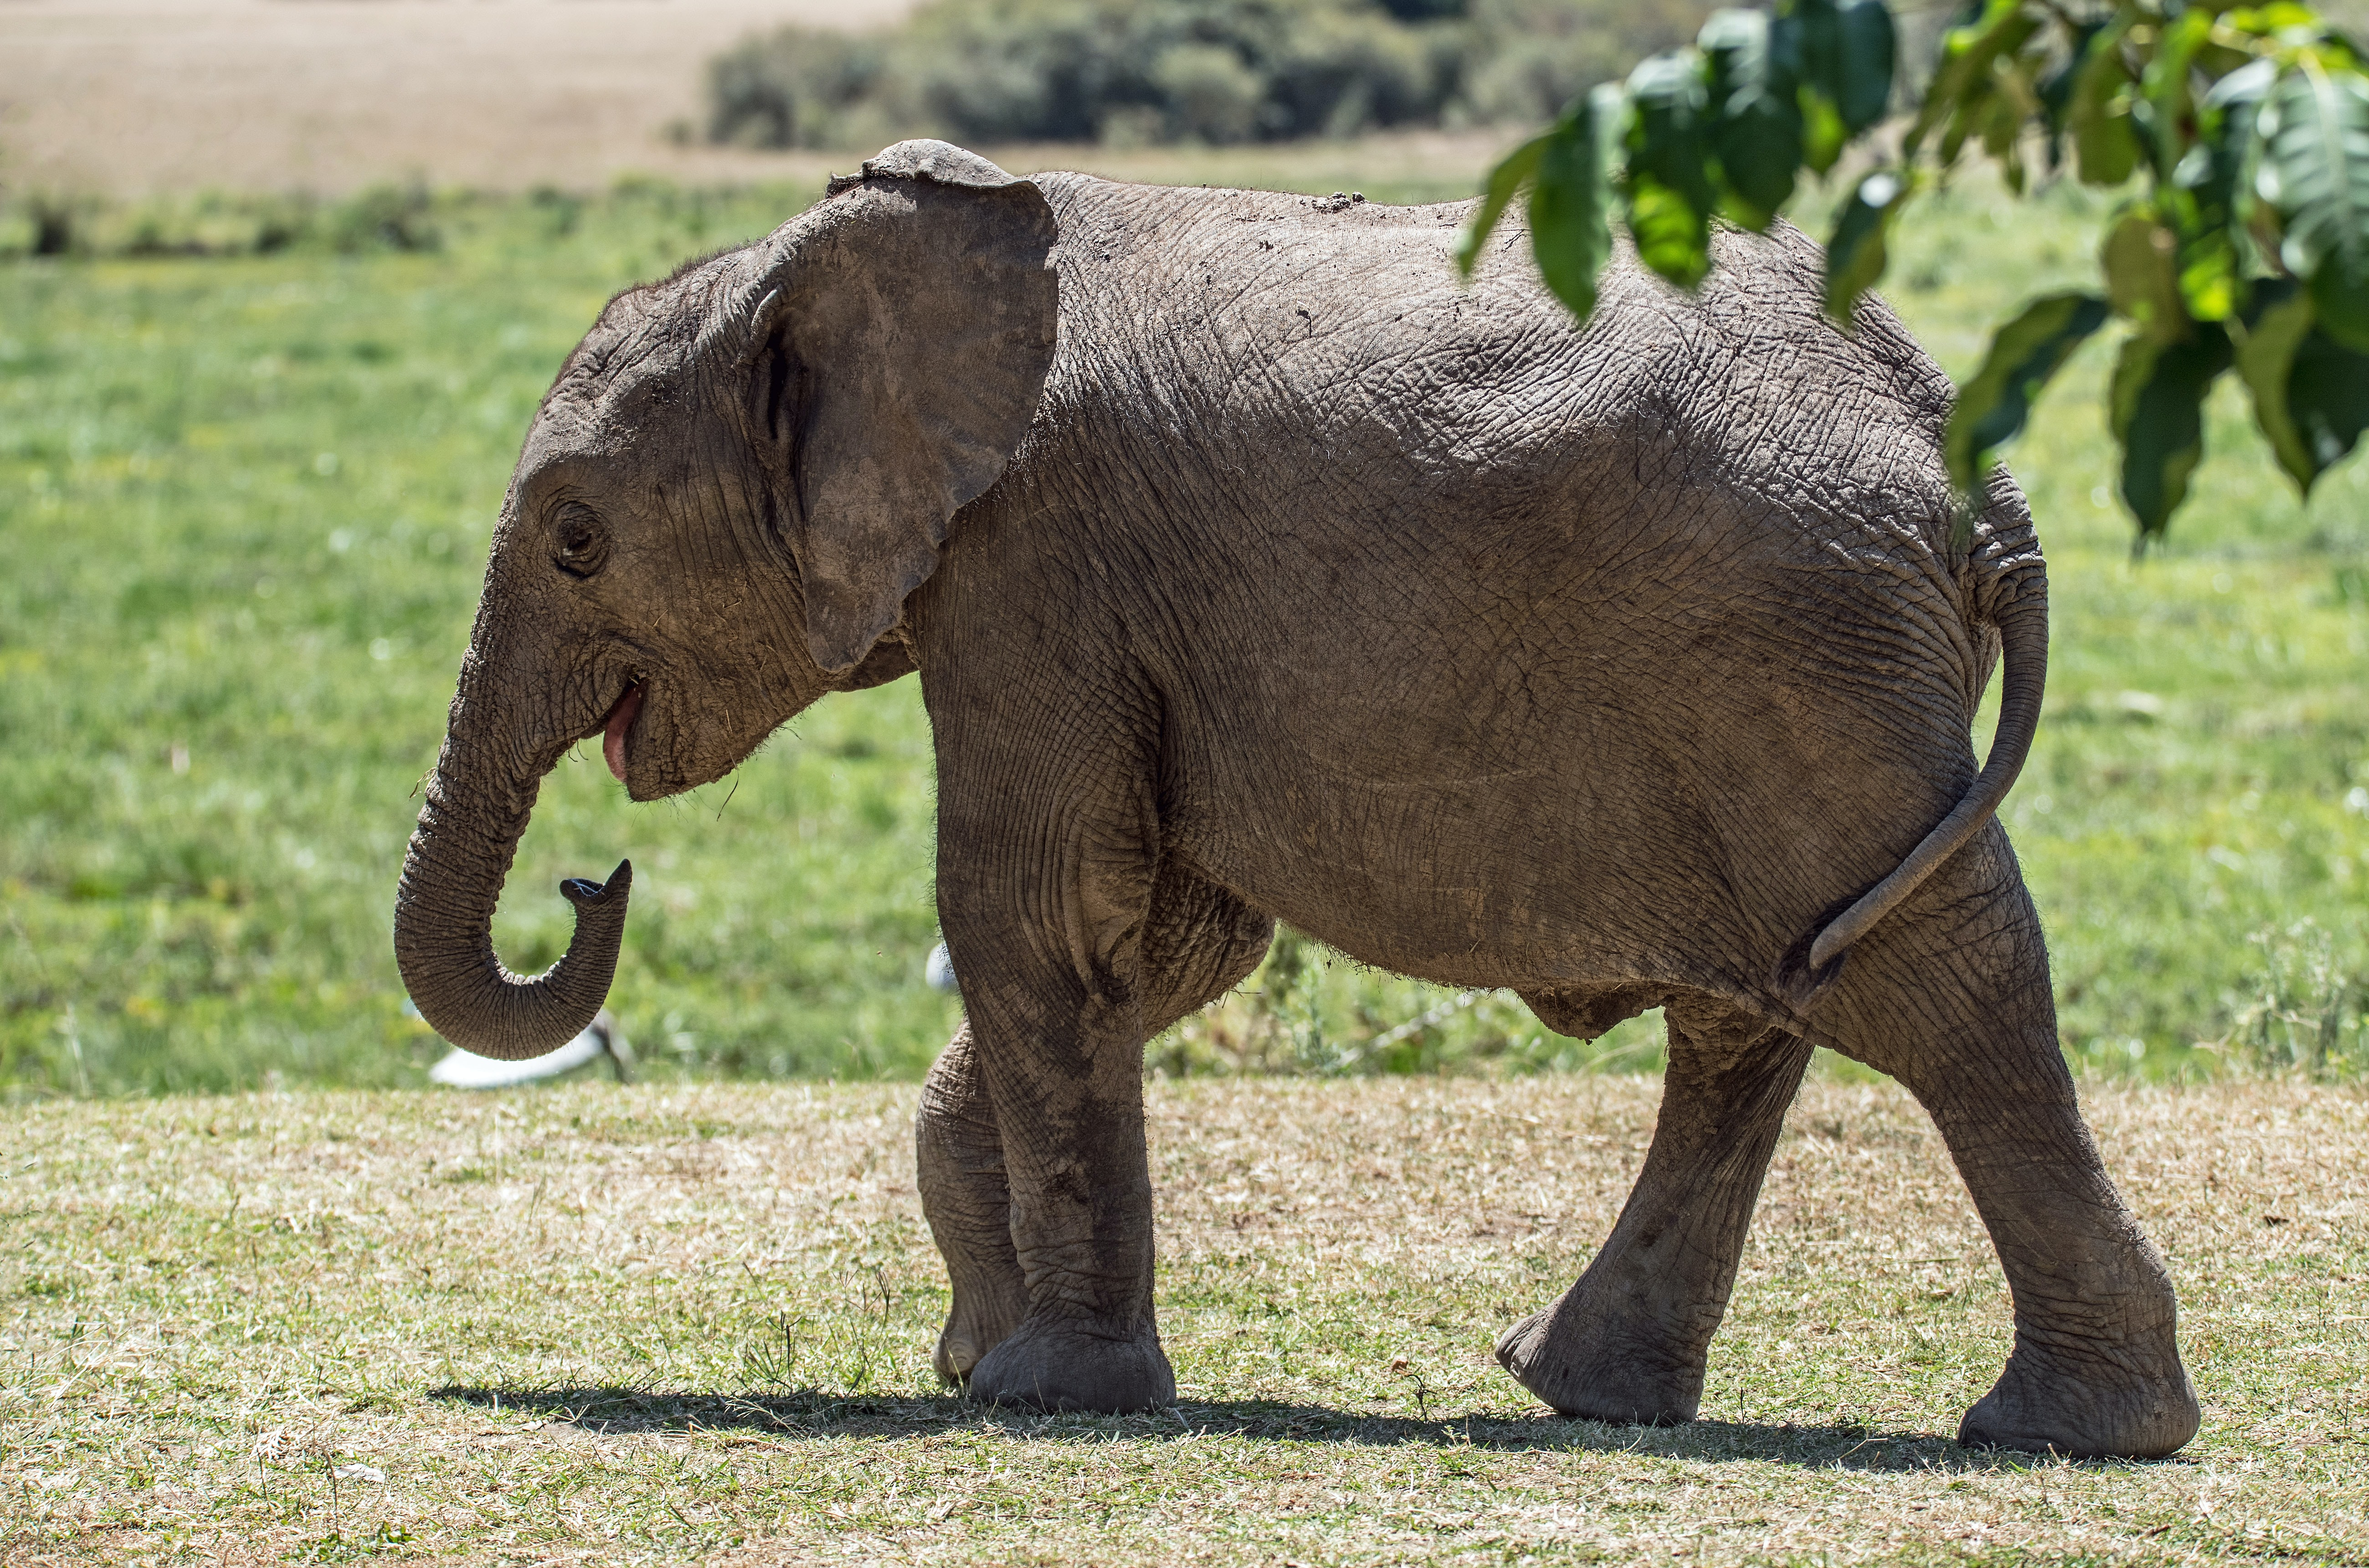 gray elephant standing on field